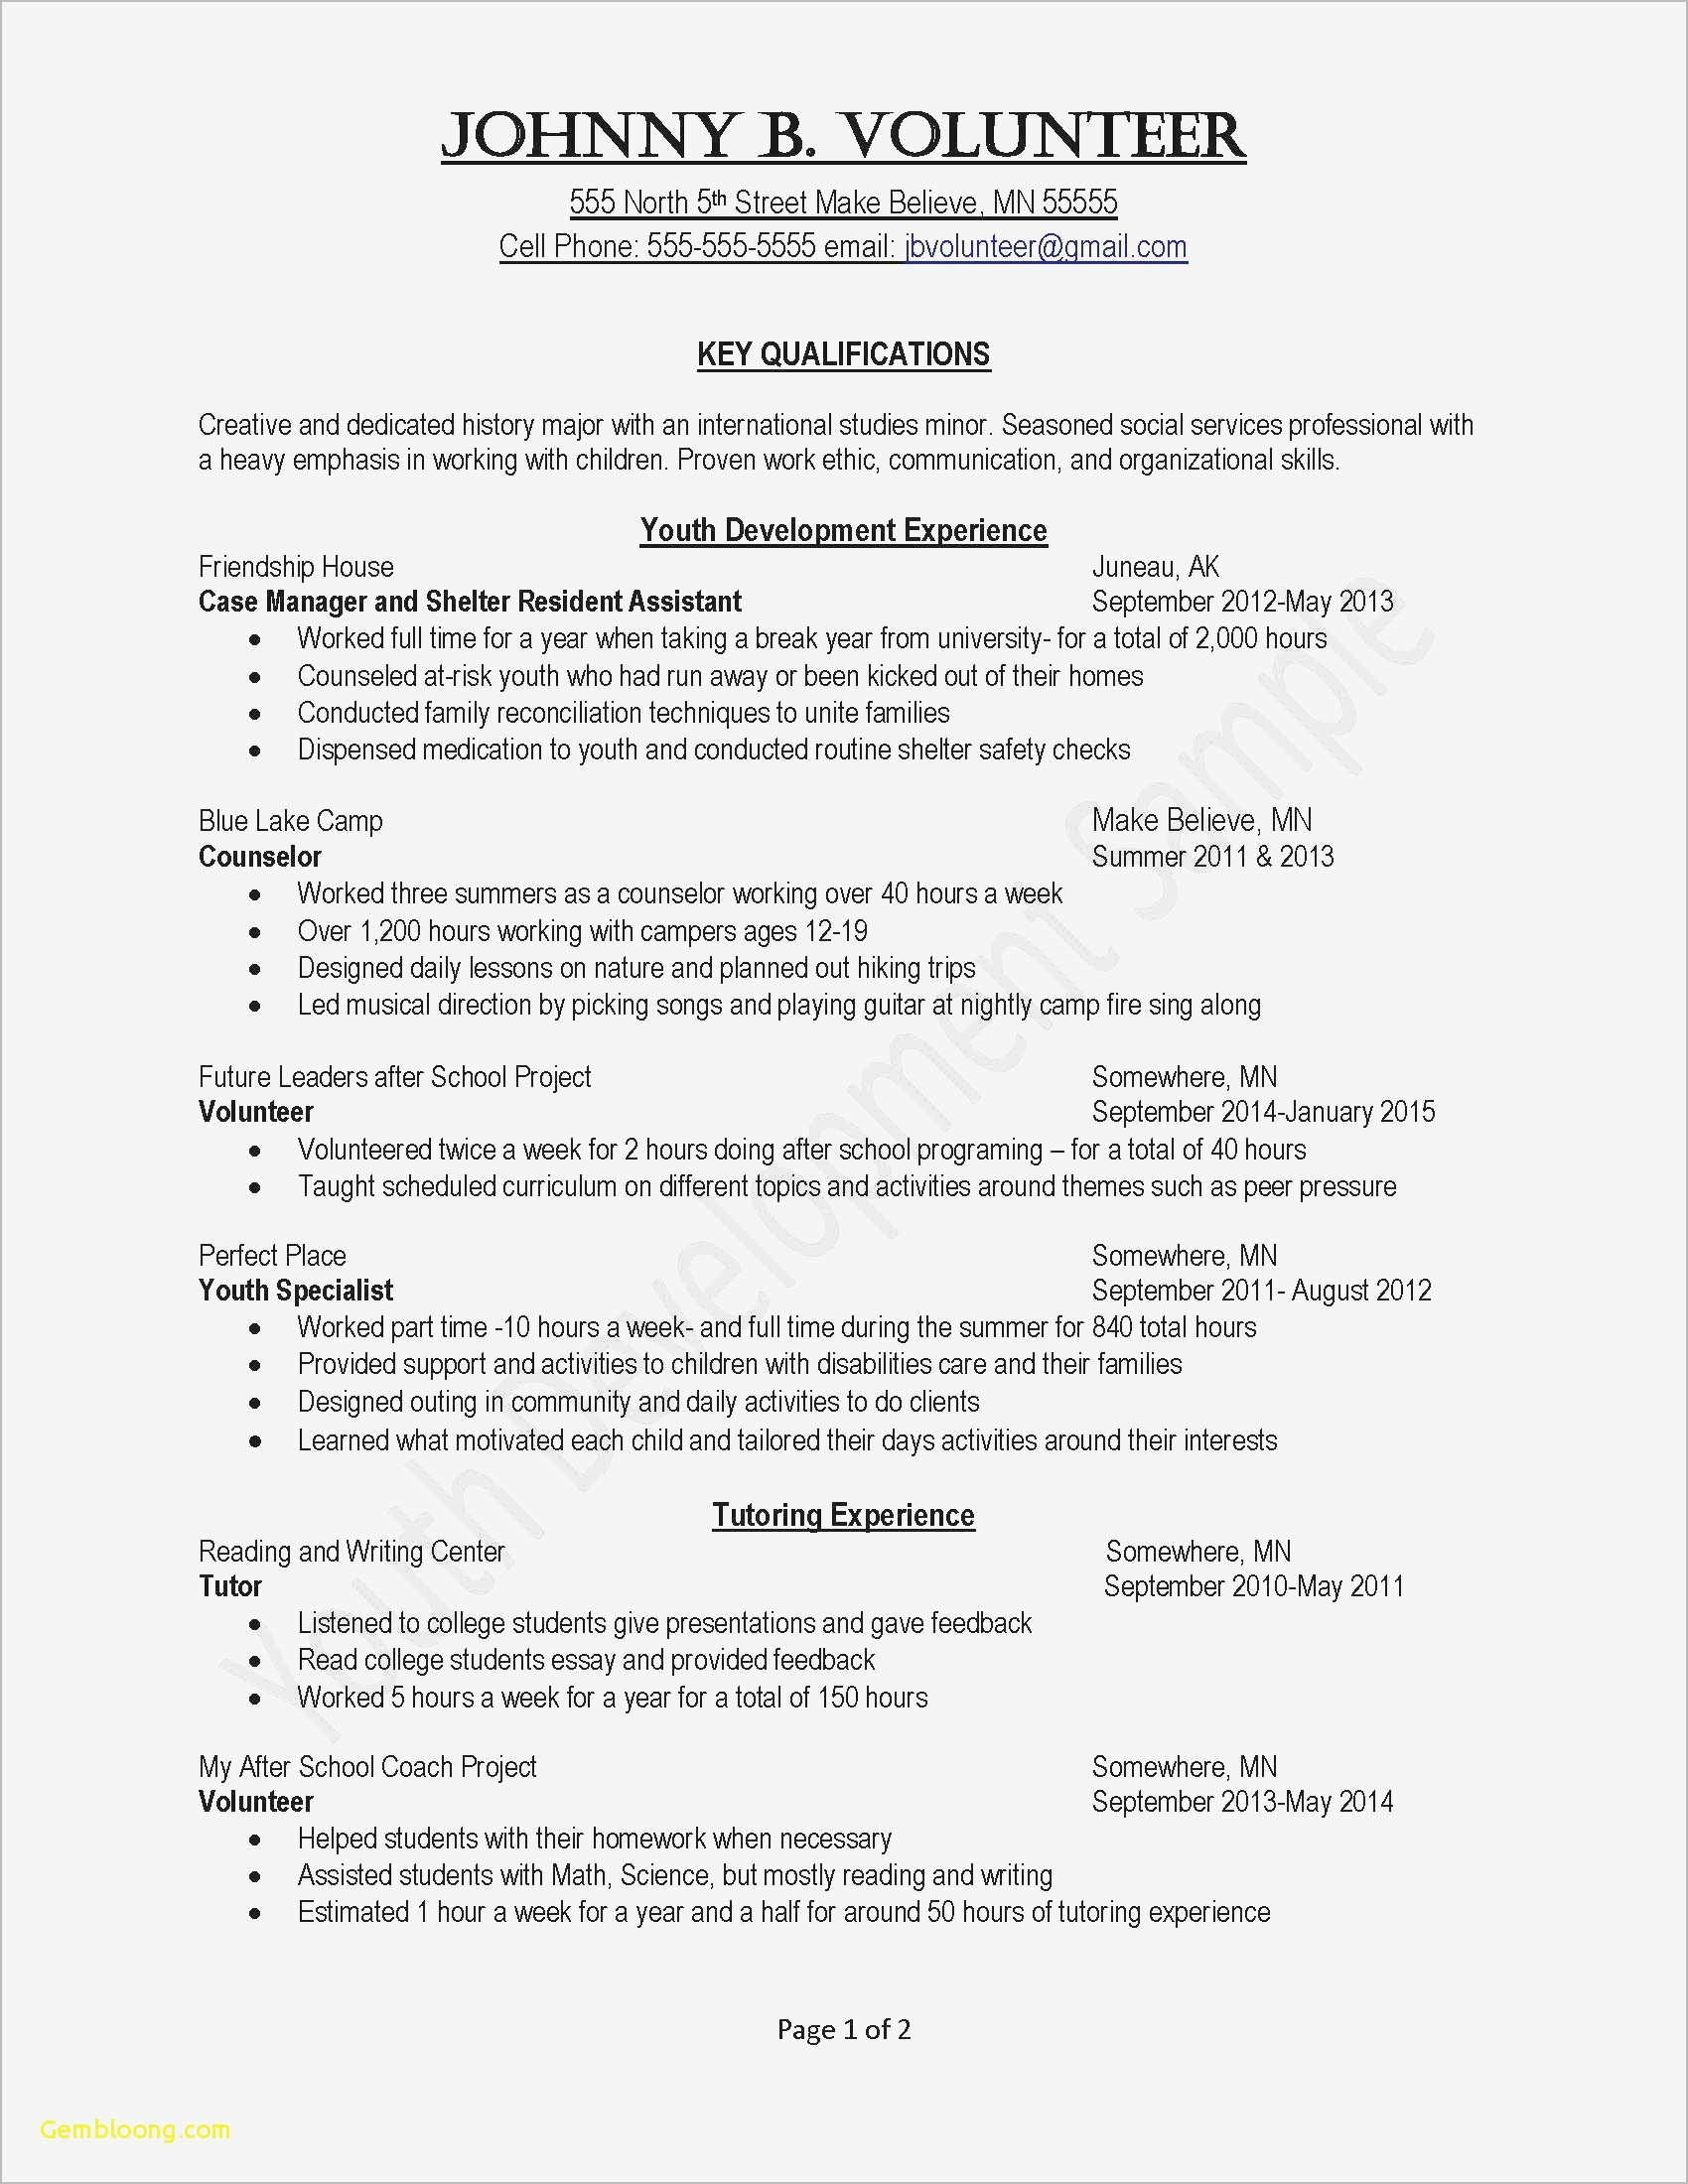 expert opinion letter template example-Job fer Letter Template Us Copy Od Consultant Cover Letter Fungram Valid Simple Cover Letter Template 13-g